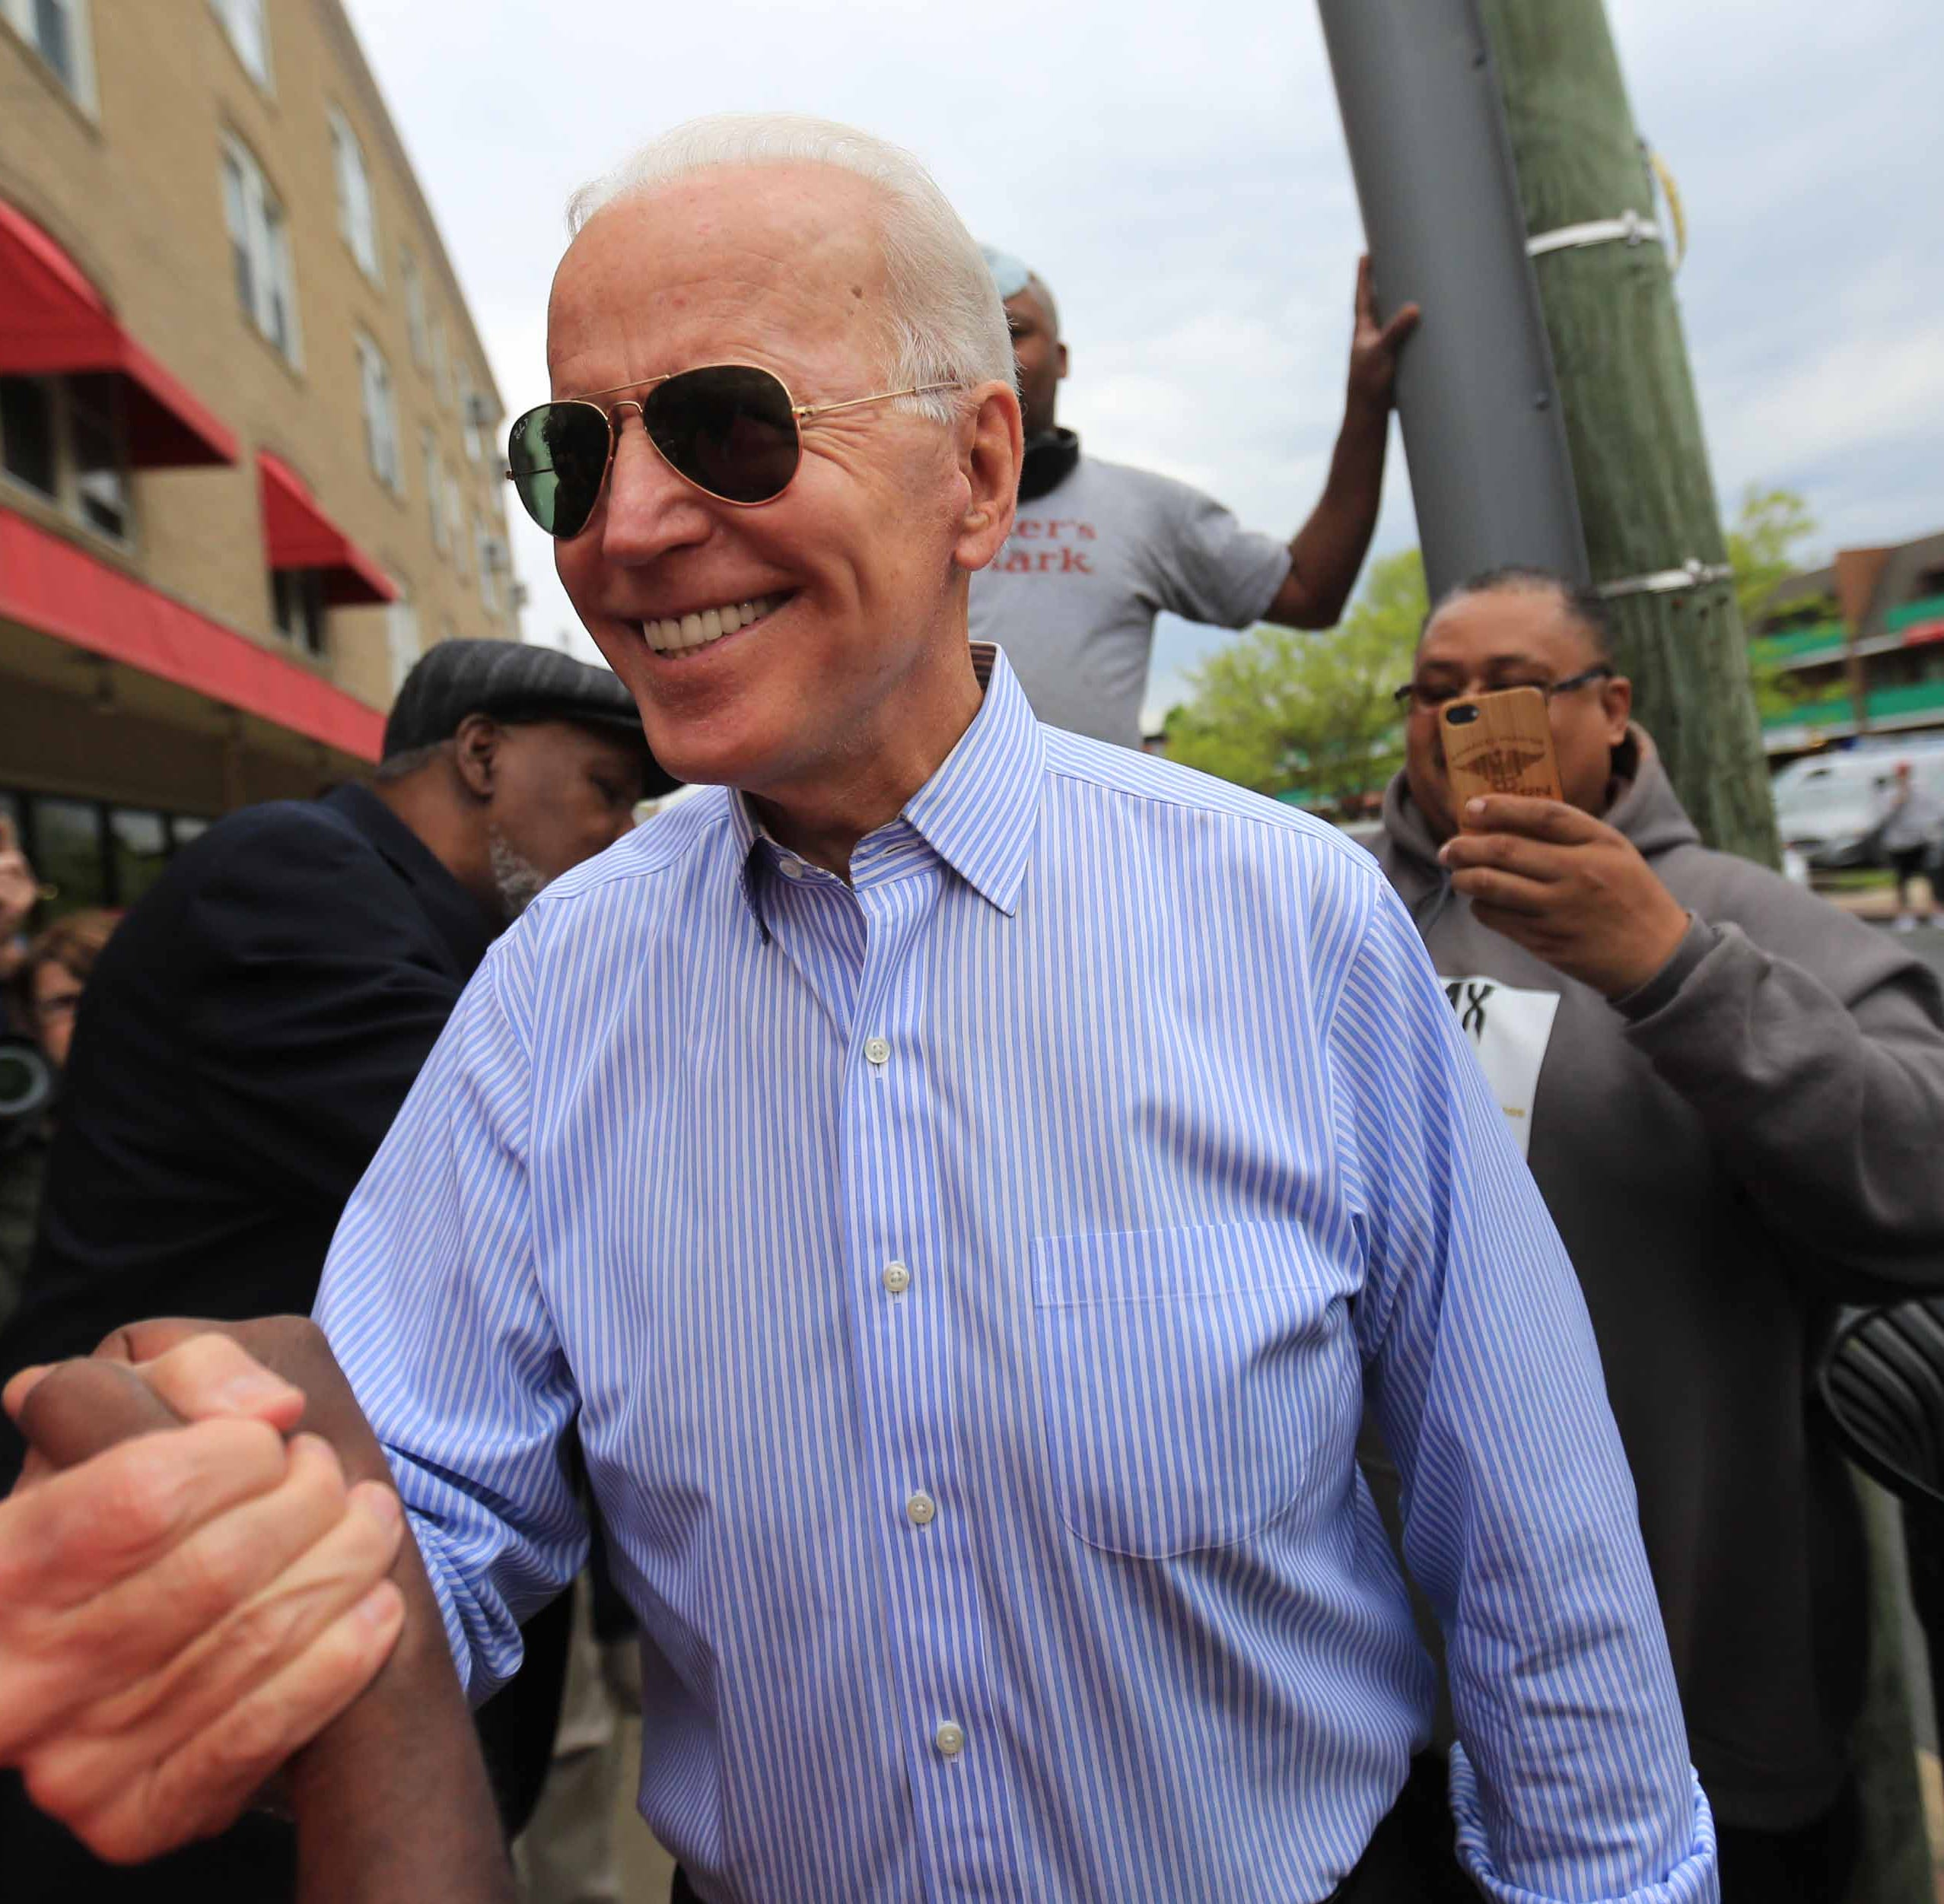 Vice President Biden shakes hands with an old friend outside of  Gianni's Pizza in Trolley Square on Thursday morning while surrounded by media.